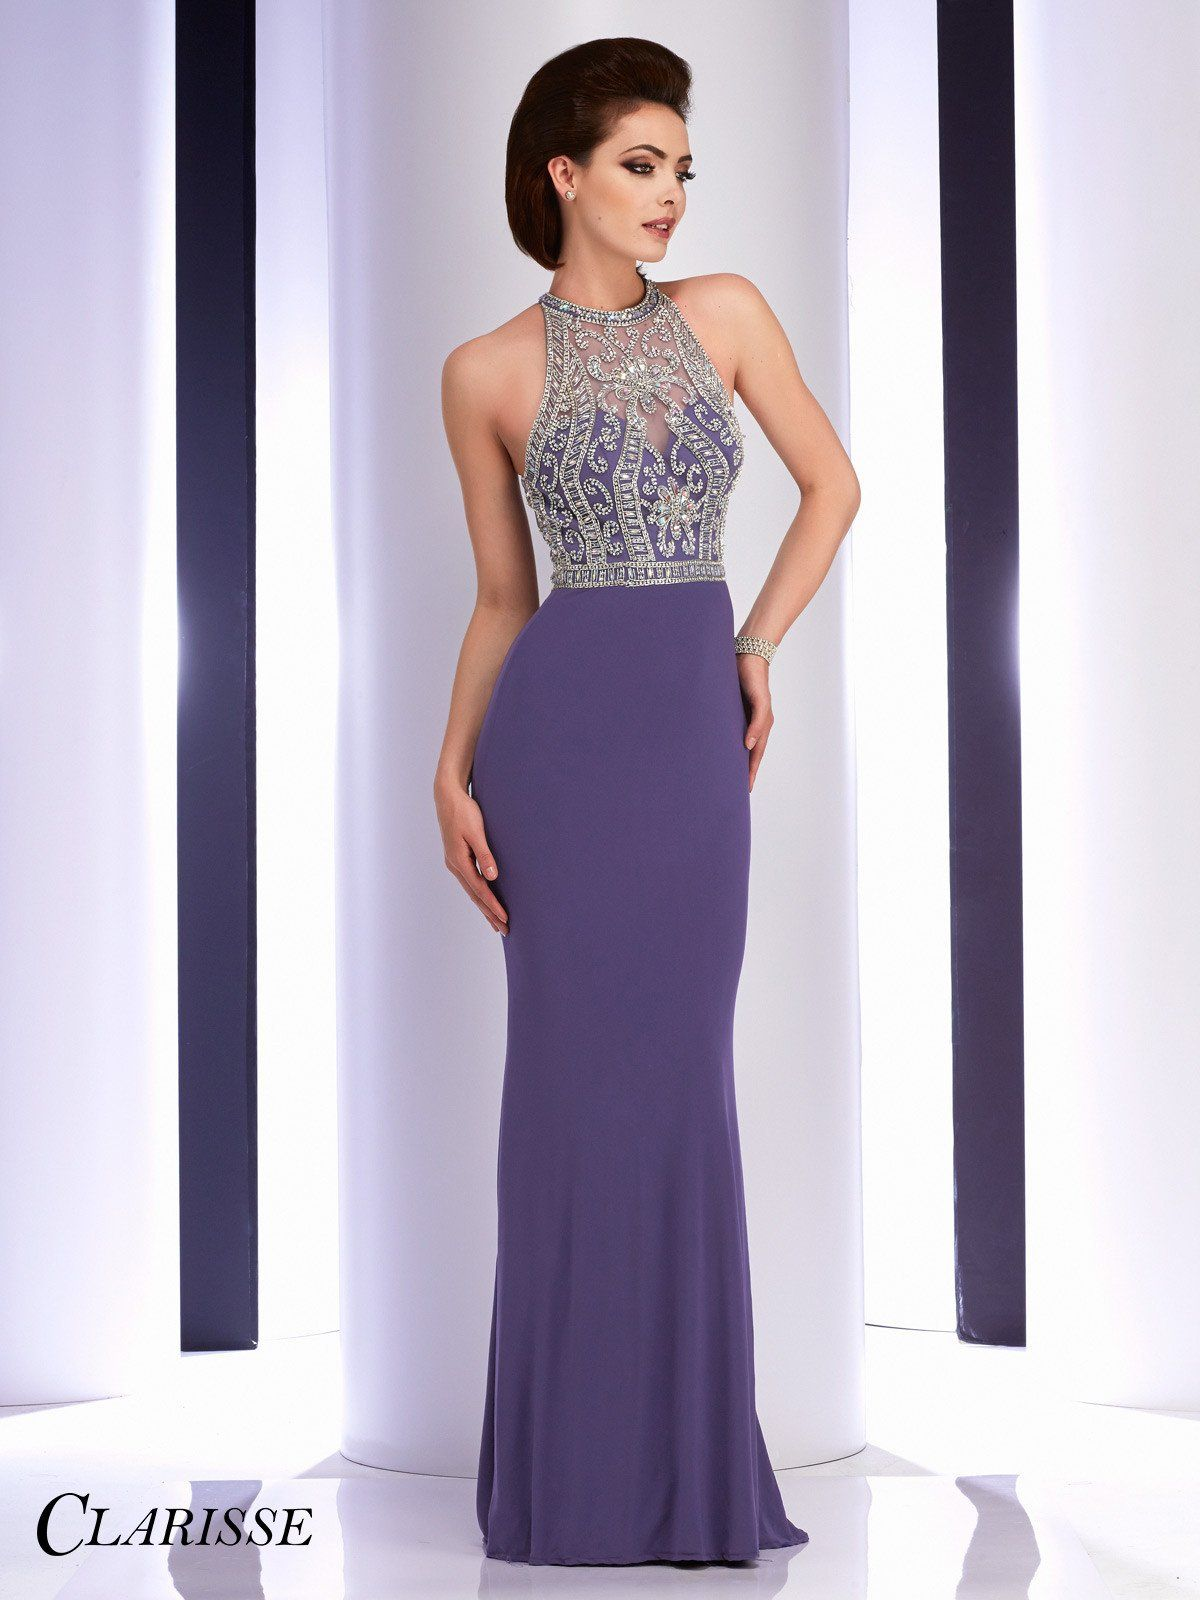 Clarisse Prom 2807 Smoke Prom Dress | Fiestas y Vestiditos